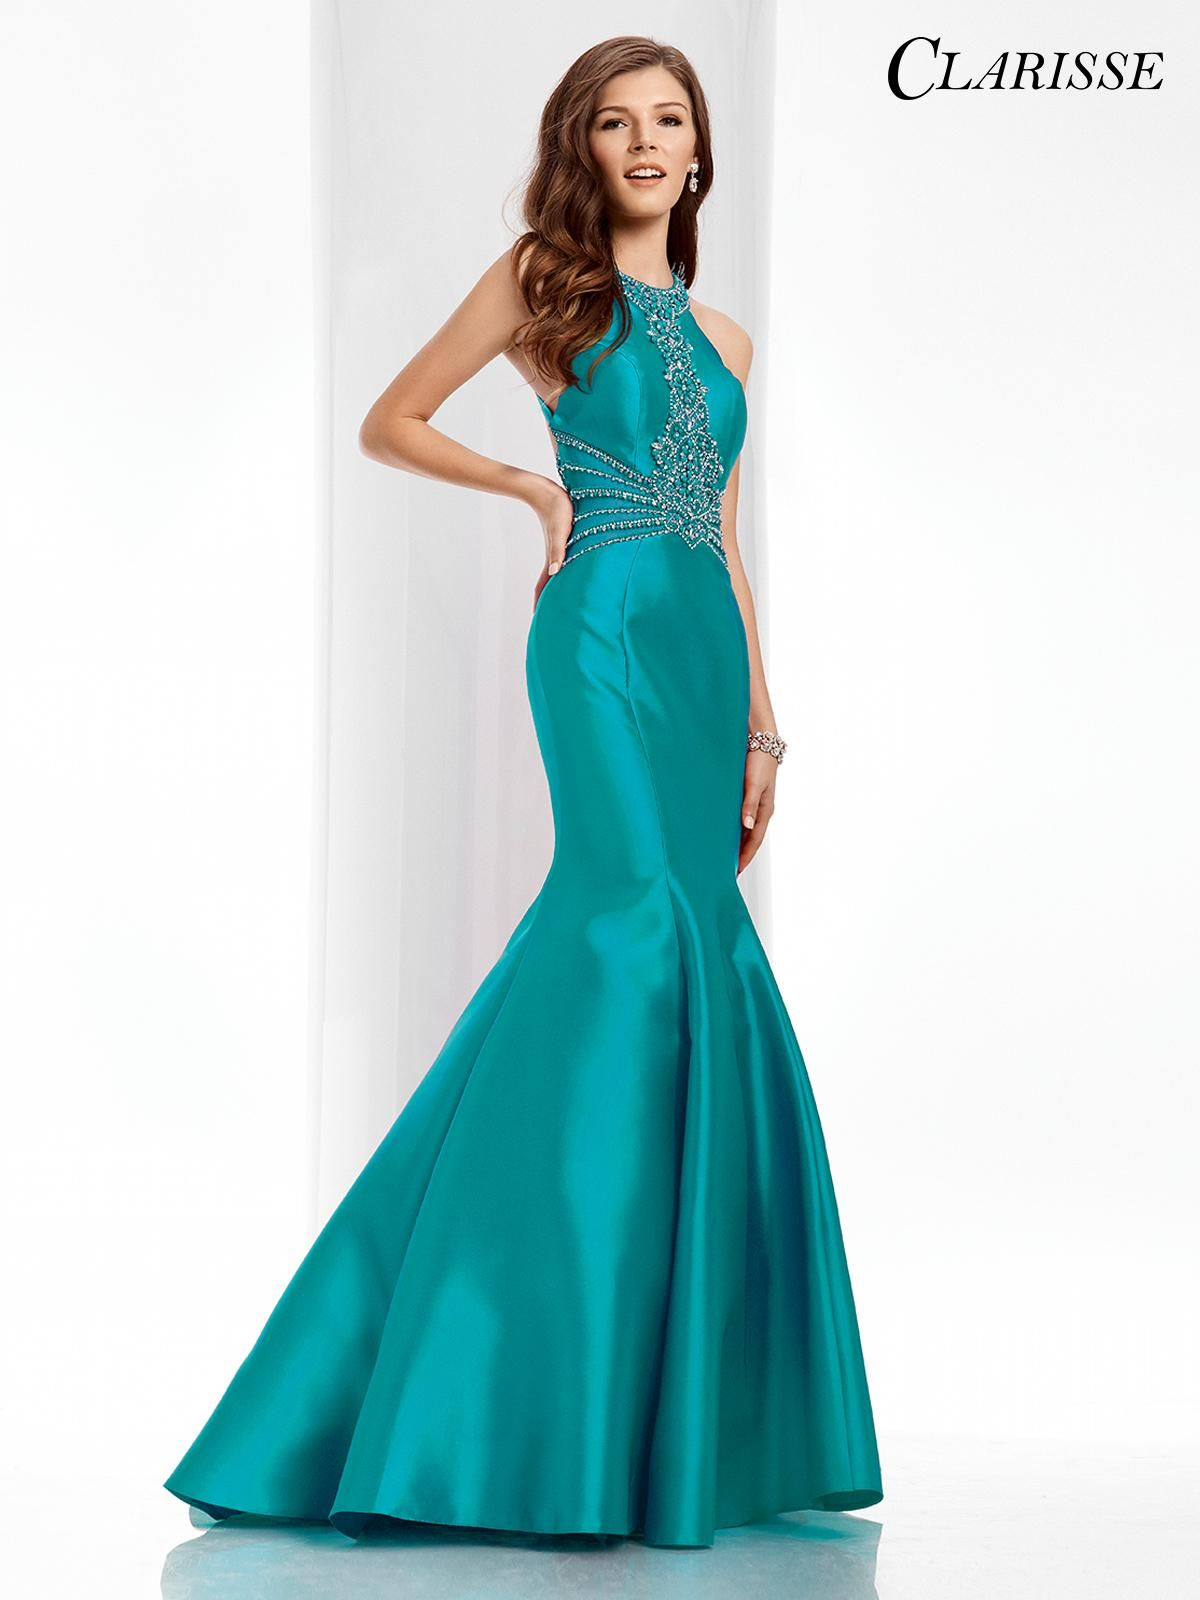 Clarisse mermaid prom dress style make a statement in